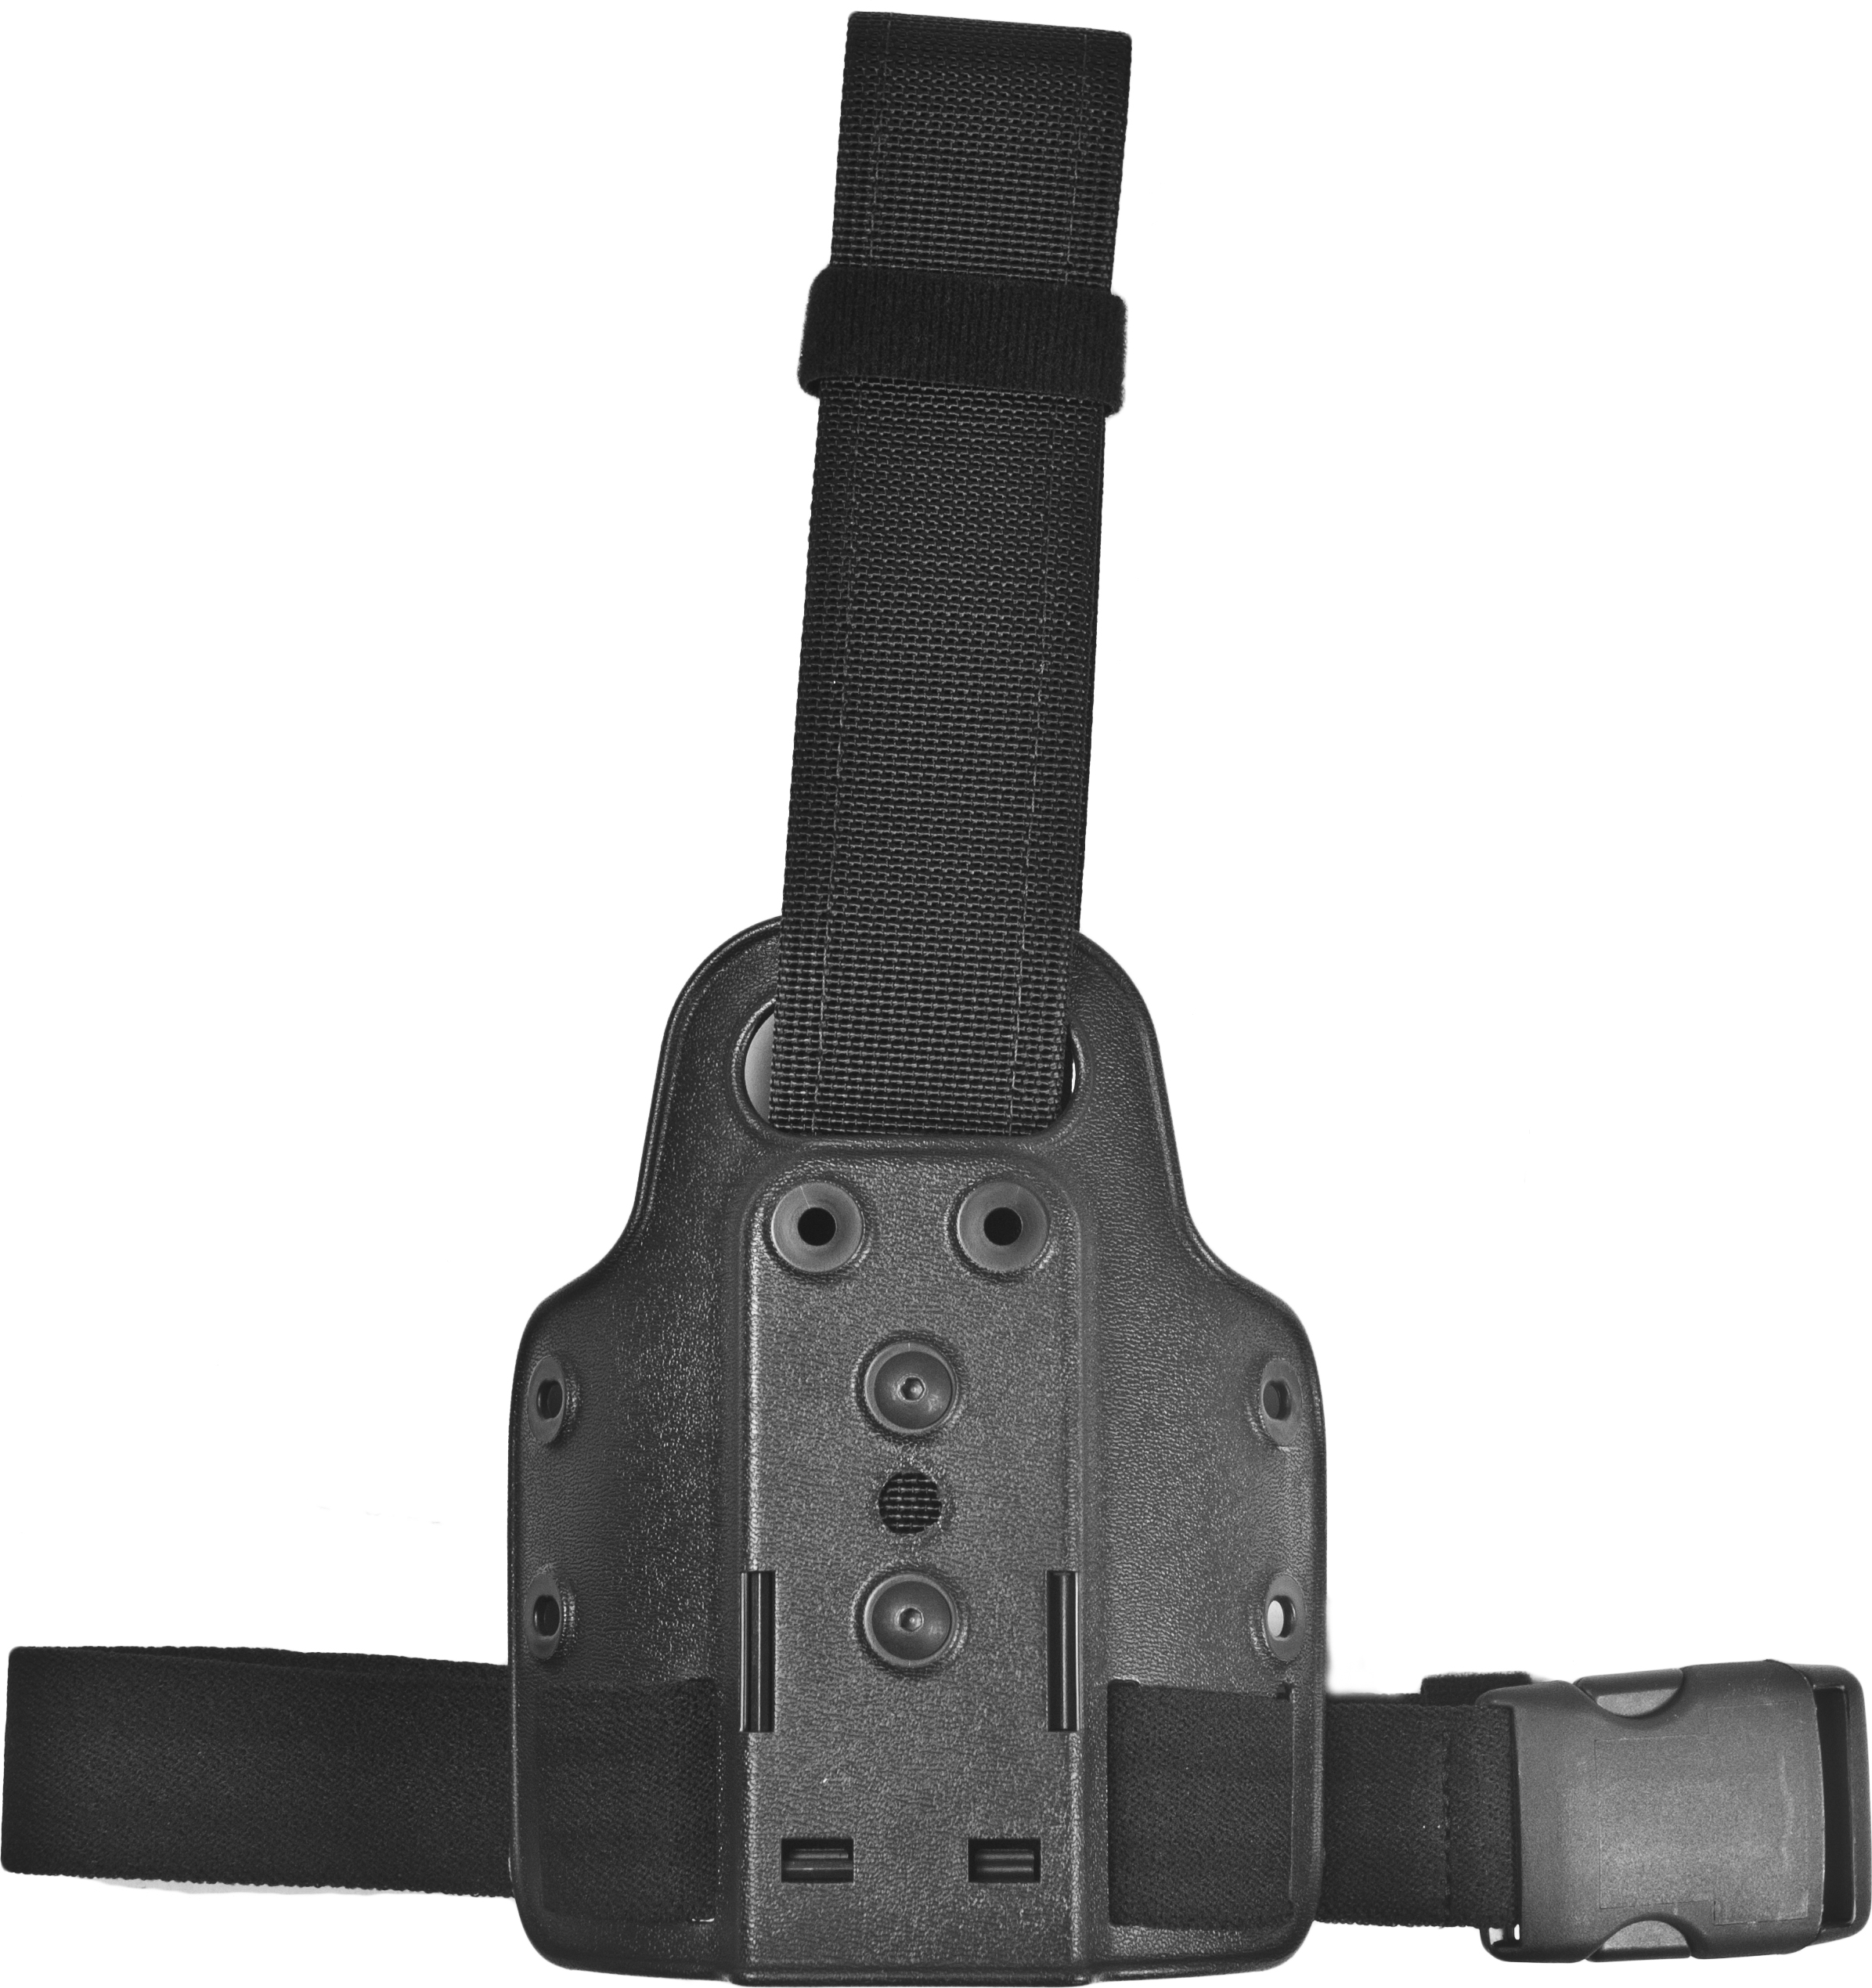 6aac81a1689e94 Safariland 6004-10 Tactical Leg Shroud Holster 6004-10-2 | 29% Off 4.8 Star  Rating Free Shipping over $49!